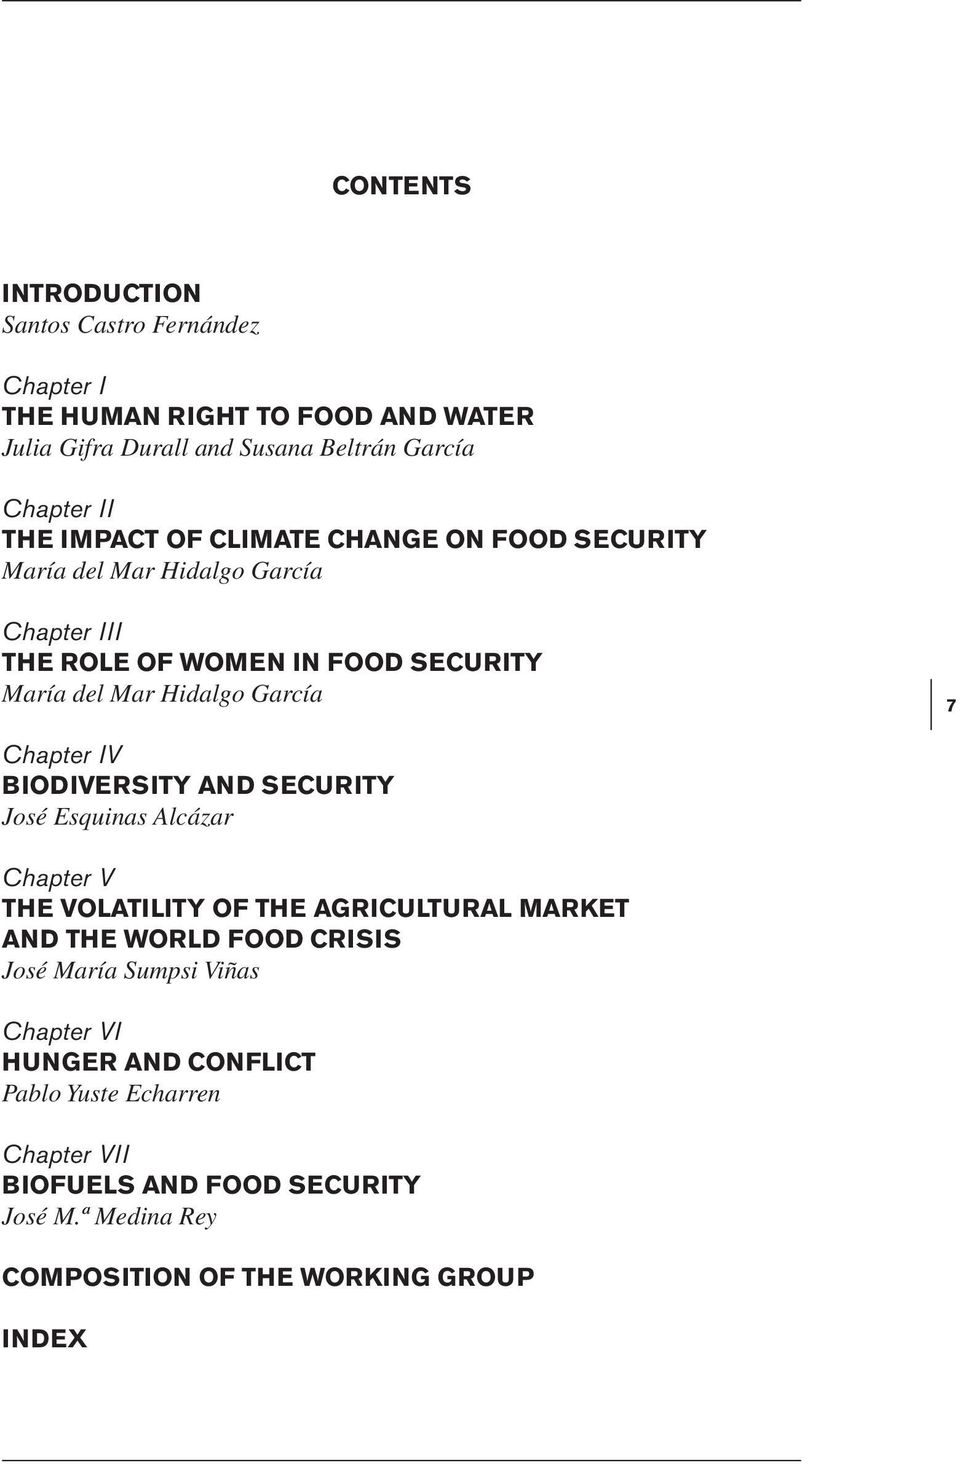 Chapter IV BIODIVERSITY AND SECURITY José Esquinas Alcázar Chapter V THE VOLATILITY OF THE AGRICULTURAL MARKET AND THE WORLD FOOD CRISIS José María Sumpsi